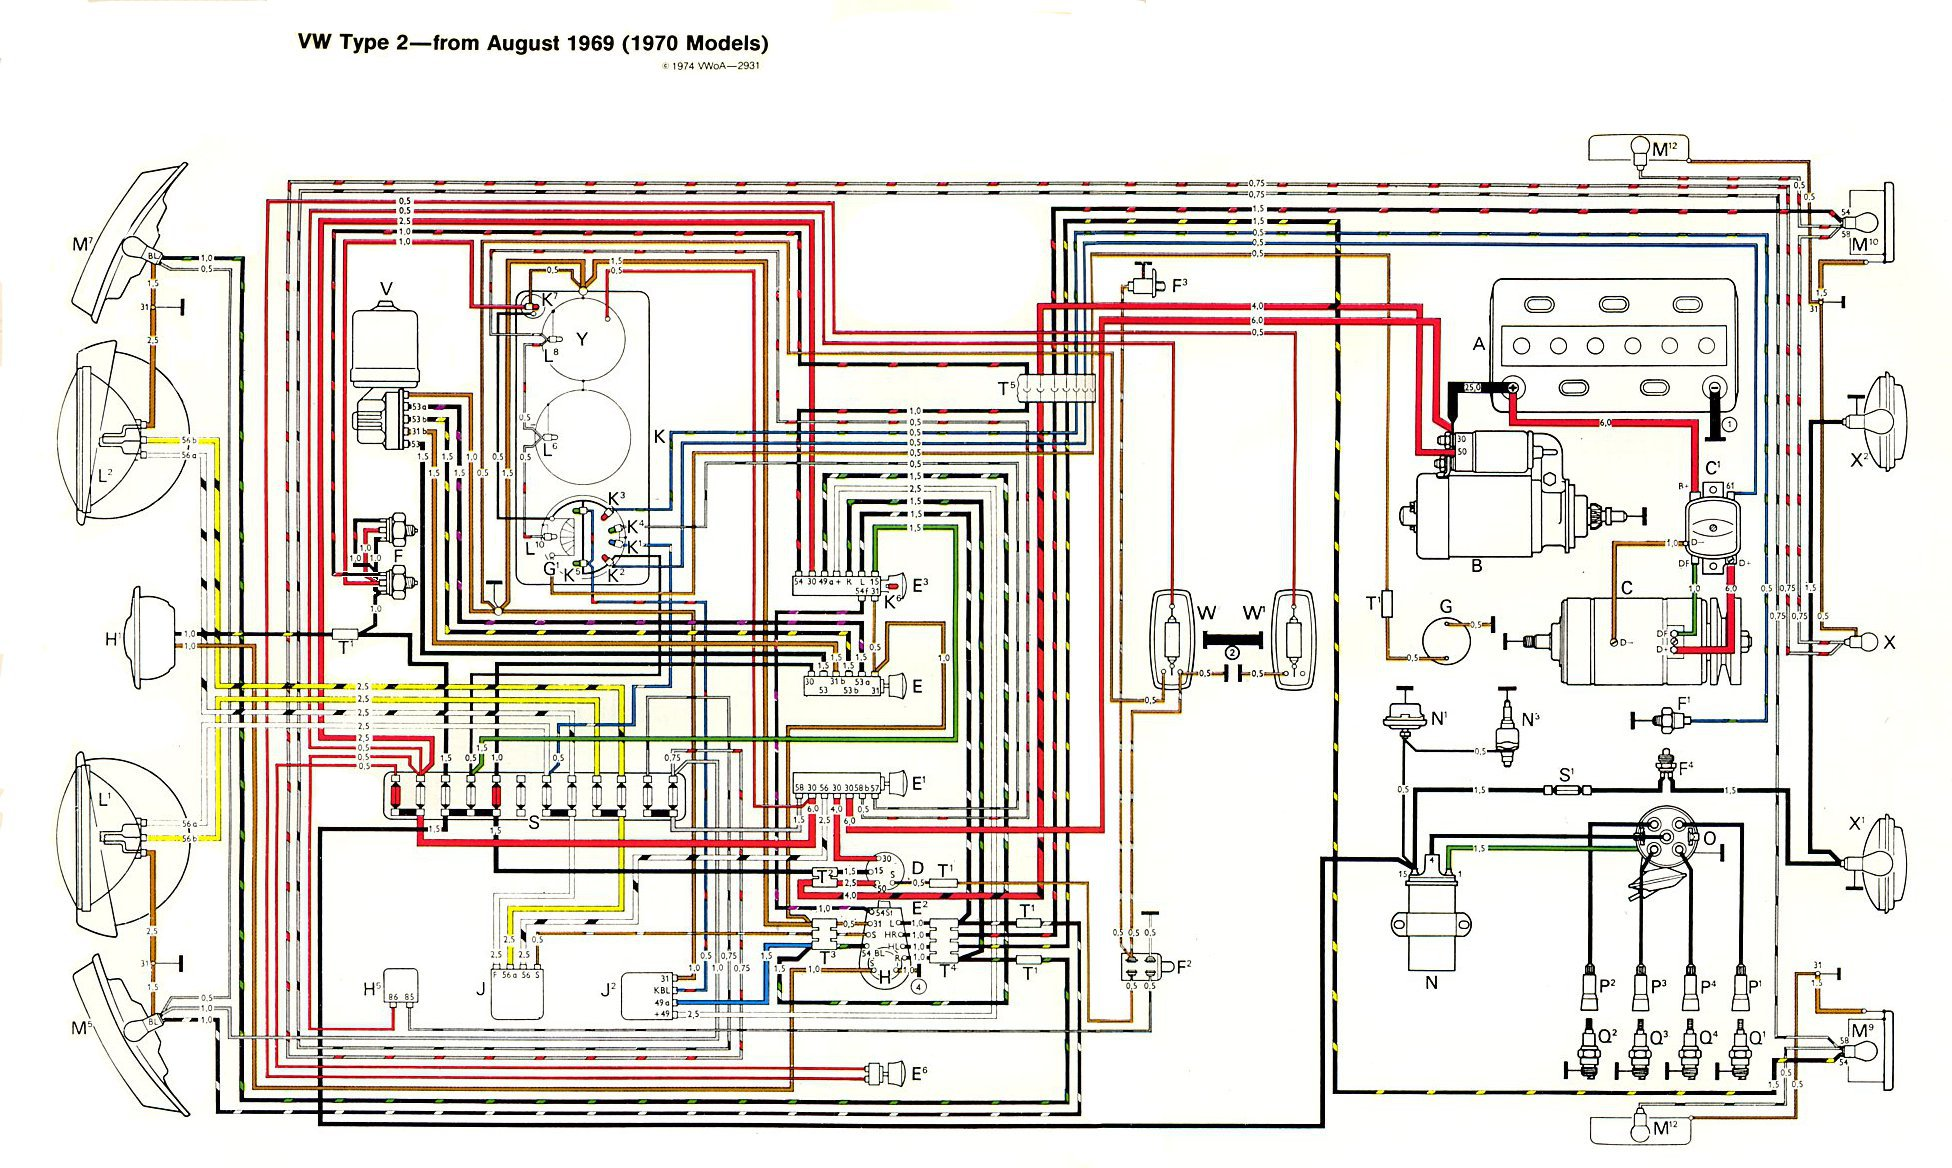 thesamba com type 2 wiring diagrams rh thesamba com 76 VW Bus Wiring Diagram VW Bus Regulator Wiring